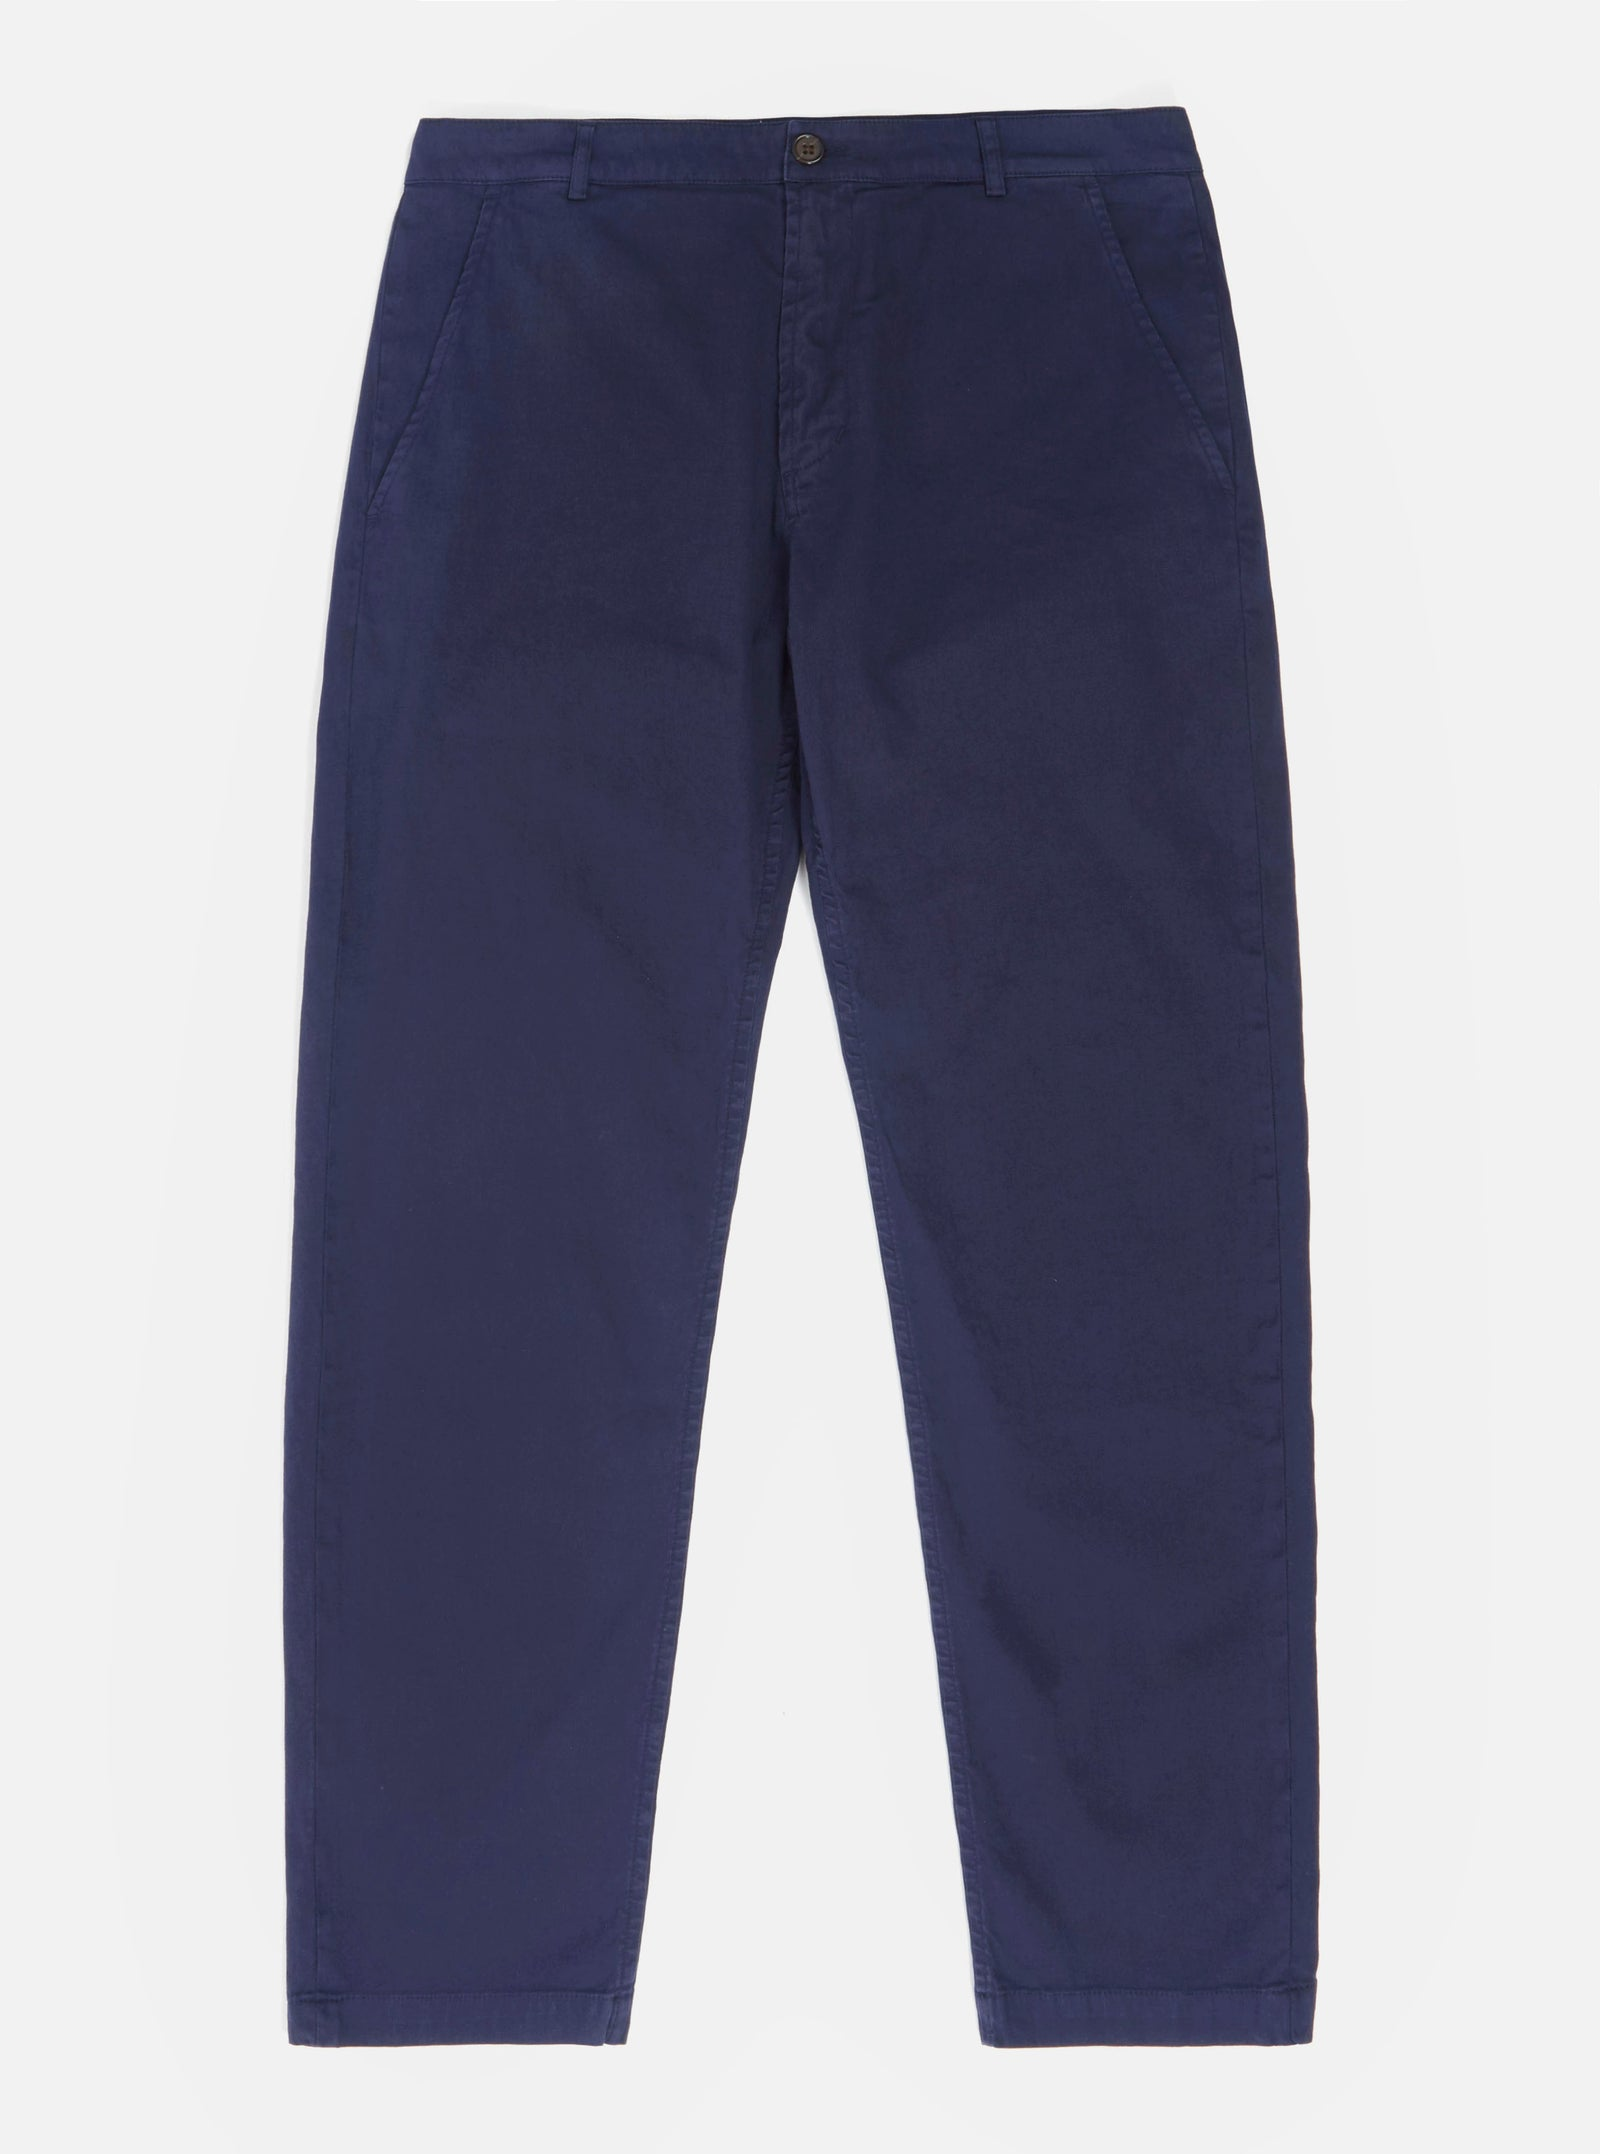 Universal Works Aston Pant in Navy Fine Weave Cotton